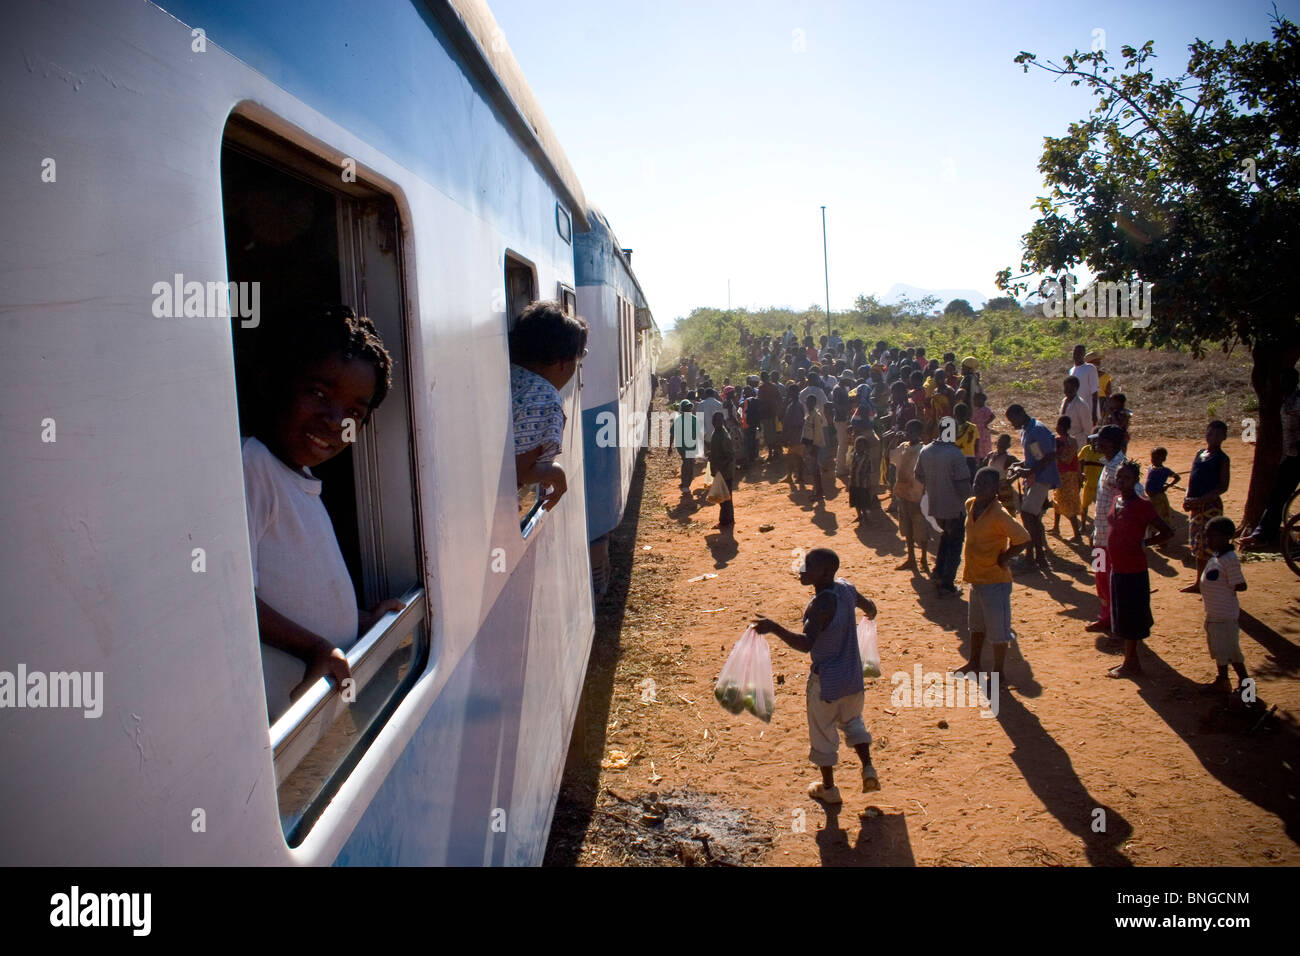 Villagers and local vendors greet the train at one of its numerous stops between Nampula and Cuamba, Mozambique. - Stock Image